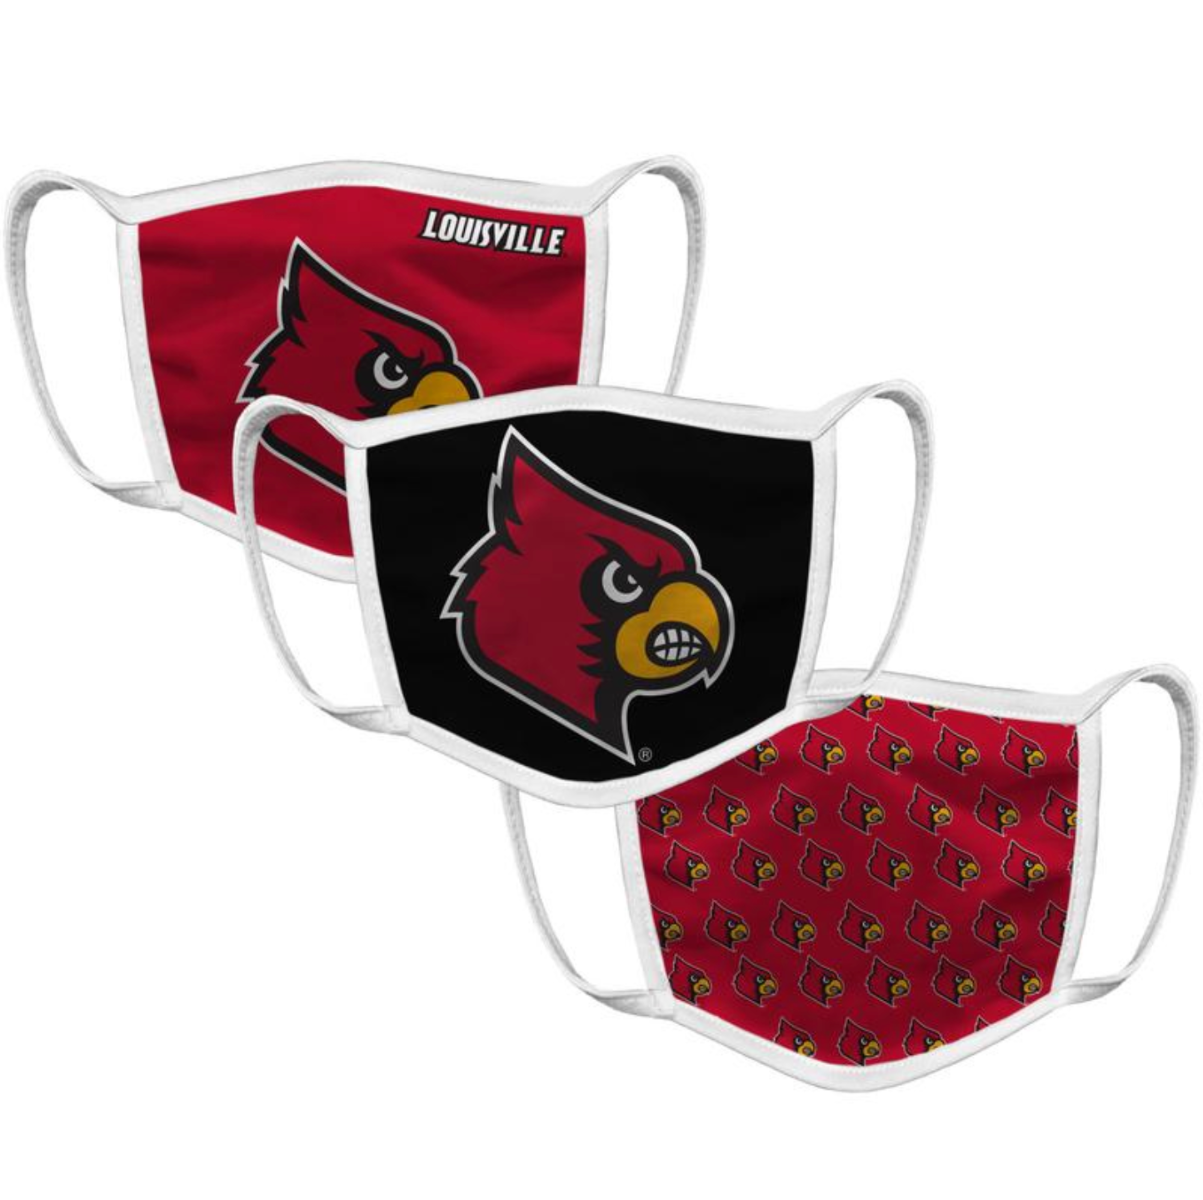 Louisville Face Mask (3 Pack)